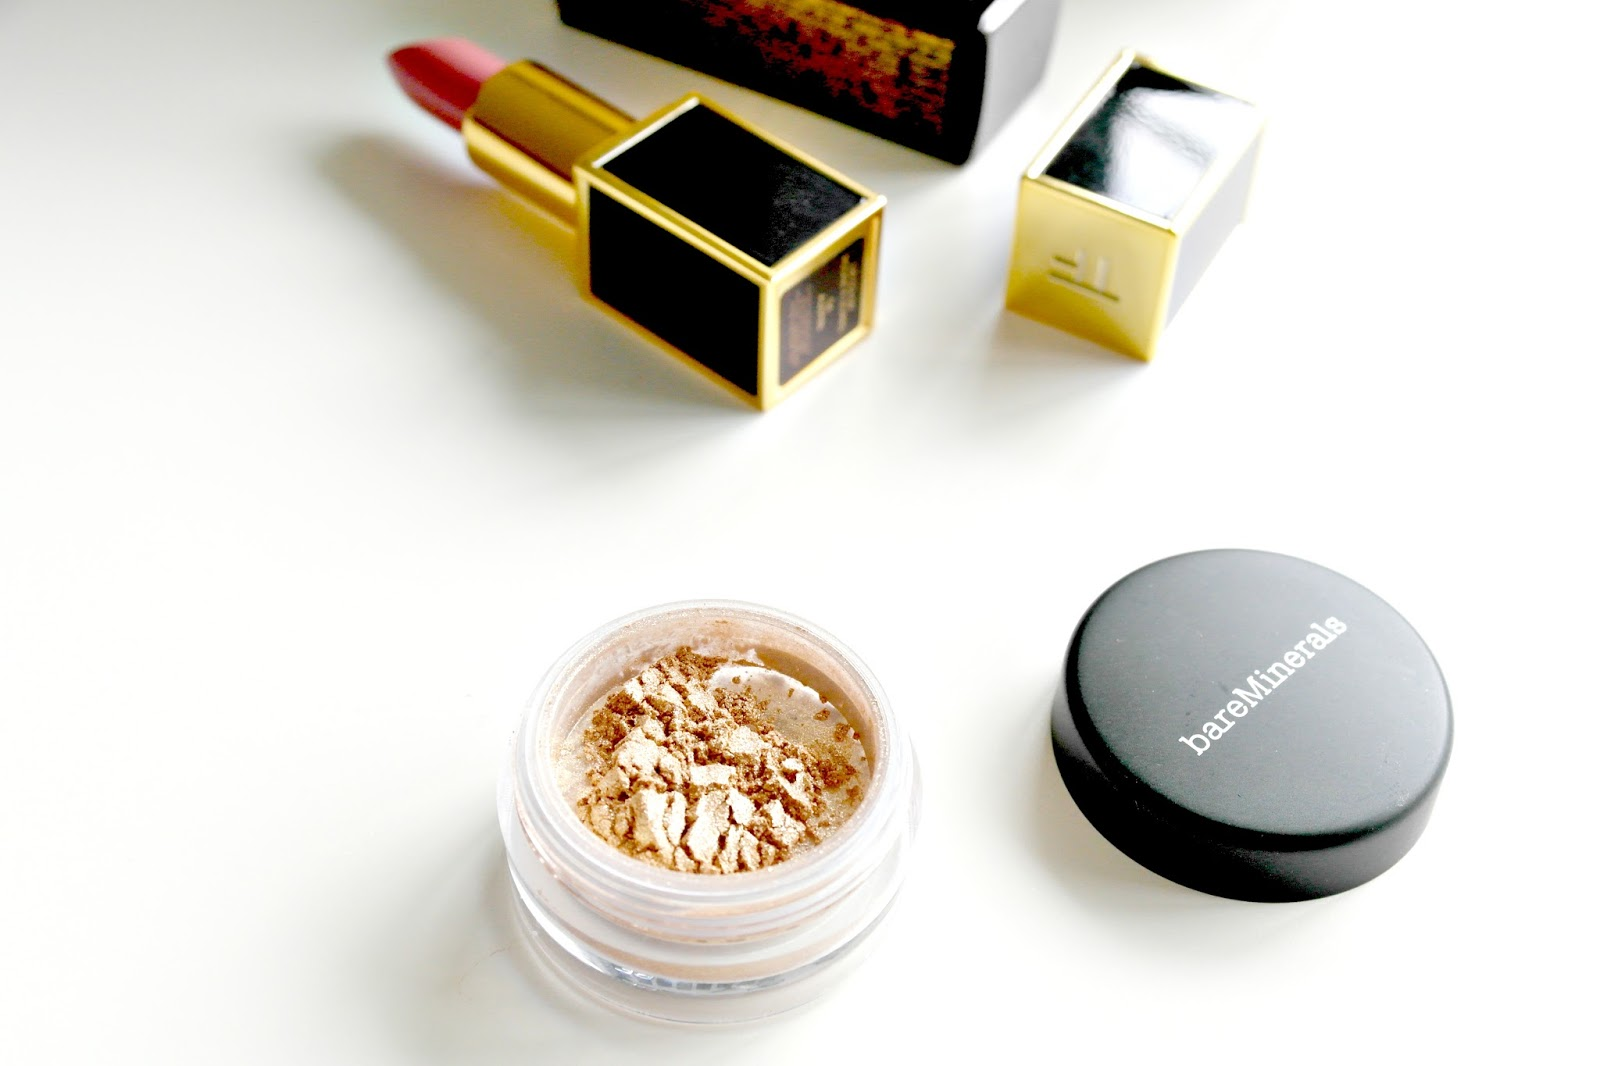 bare minerals shimmer eye shadow in true gold, heathrow, beauty blog